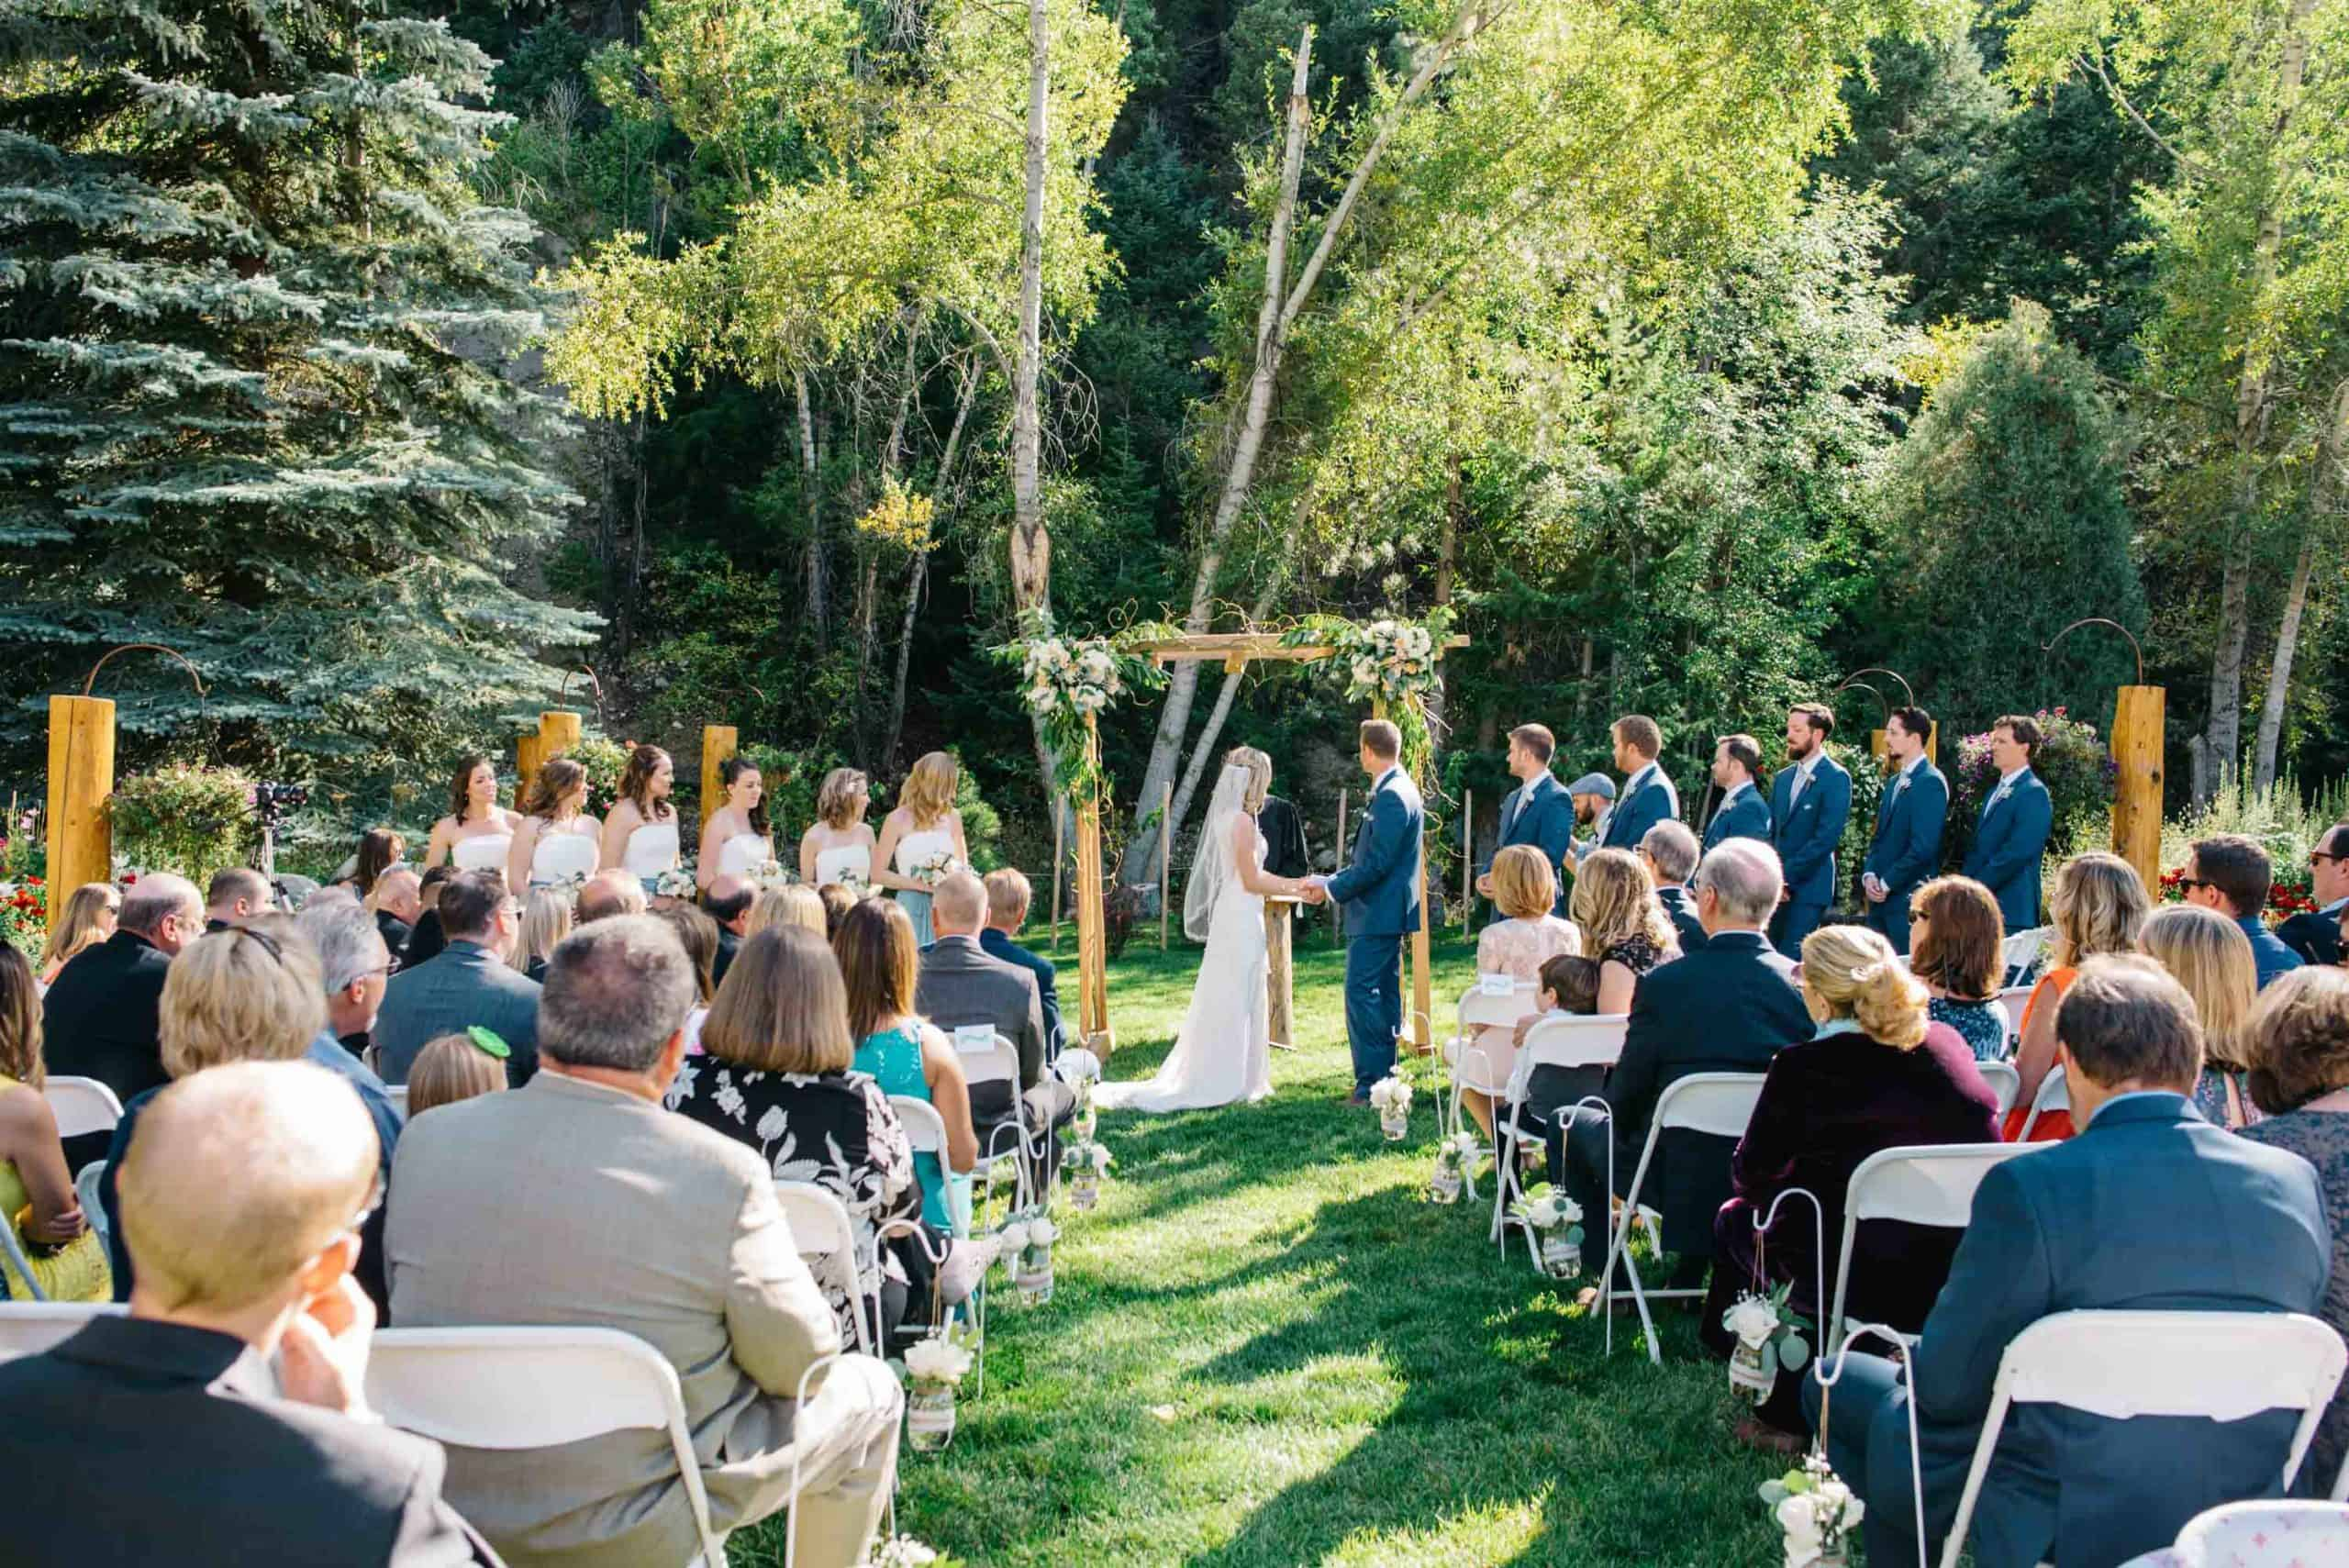 view of a wedding ceremony with guests on a green grassy area and trees in the background